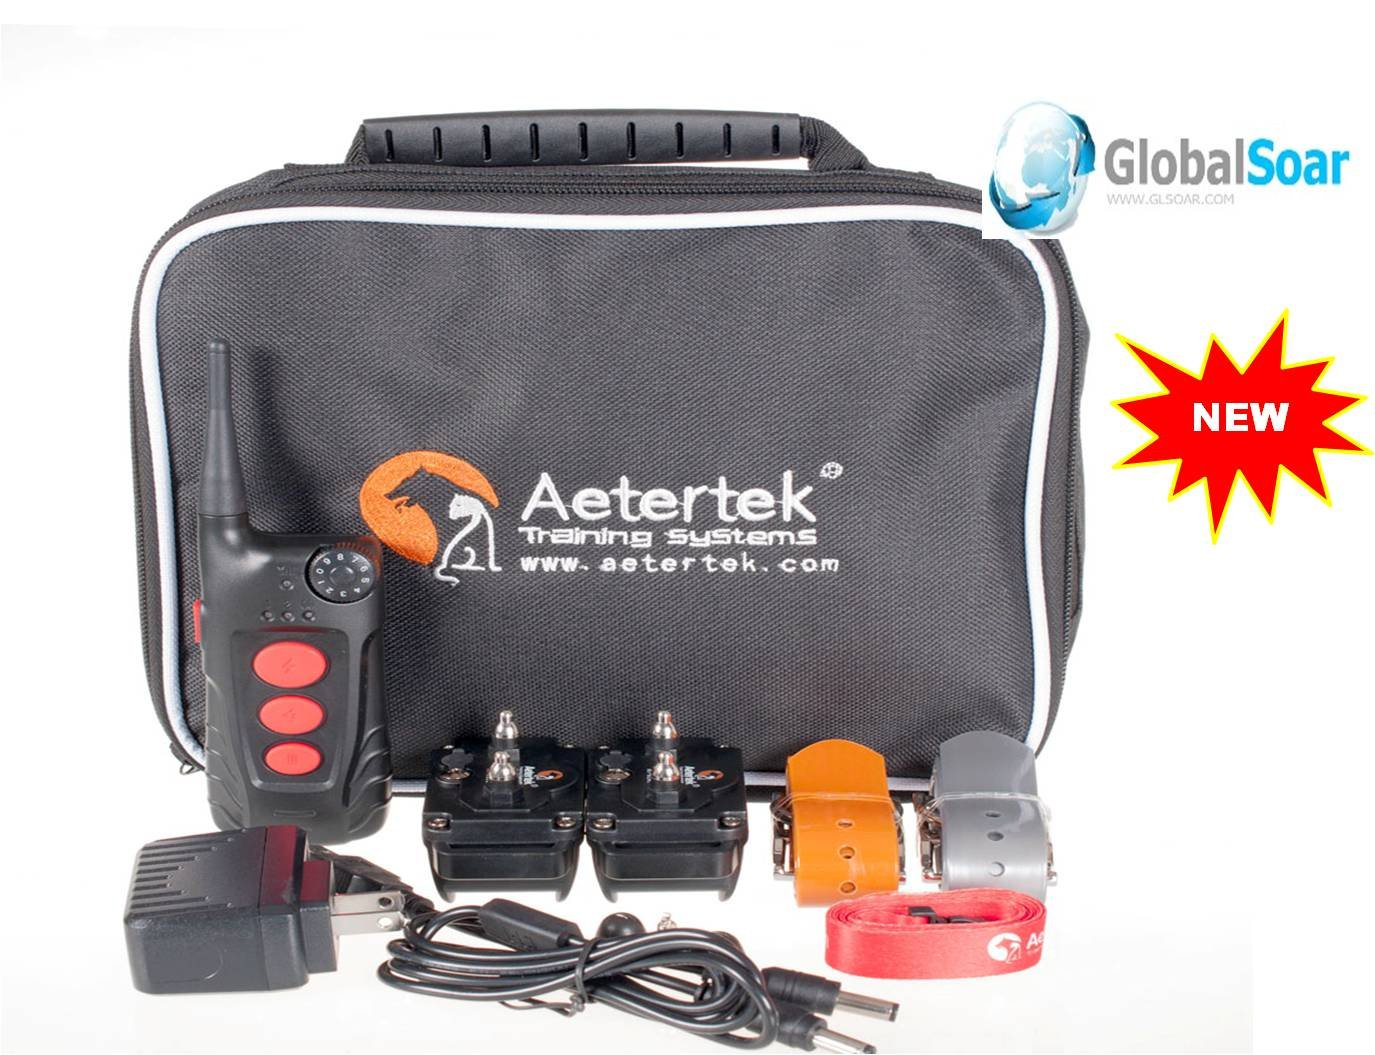 Aetertek 918C-2 600 Yard 9 Level 2 Dogs Training Anti Bark & Waterproof Collar by Aetertek